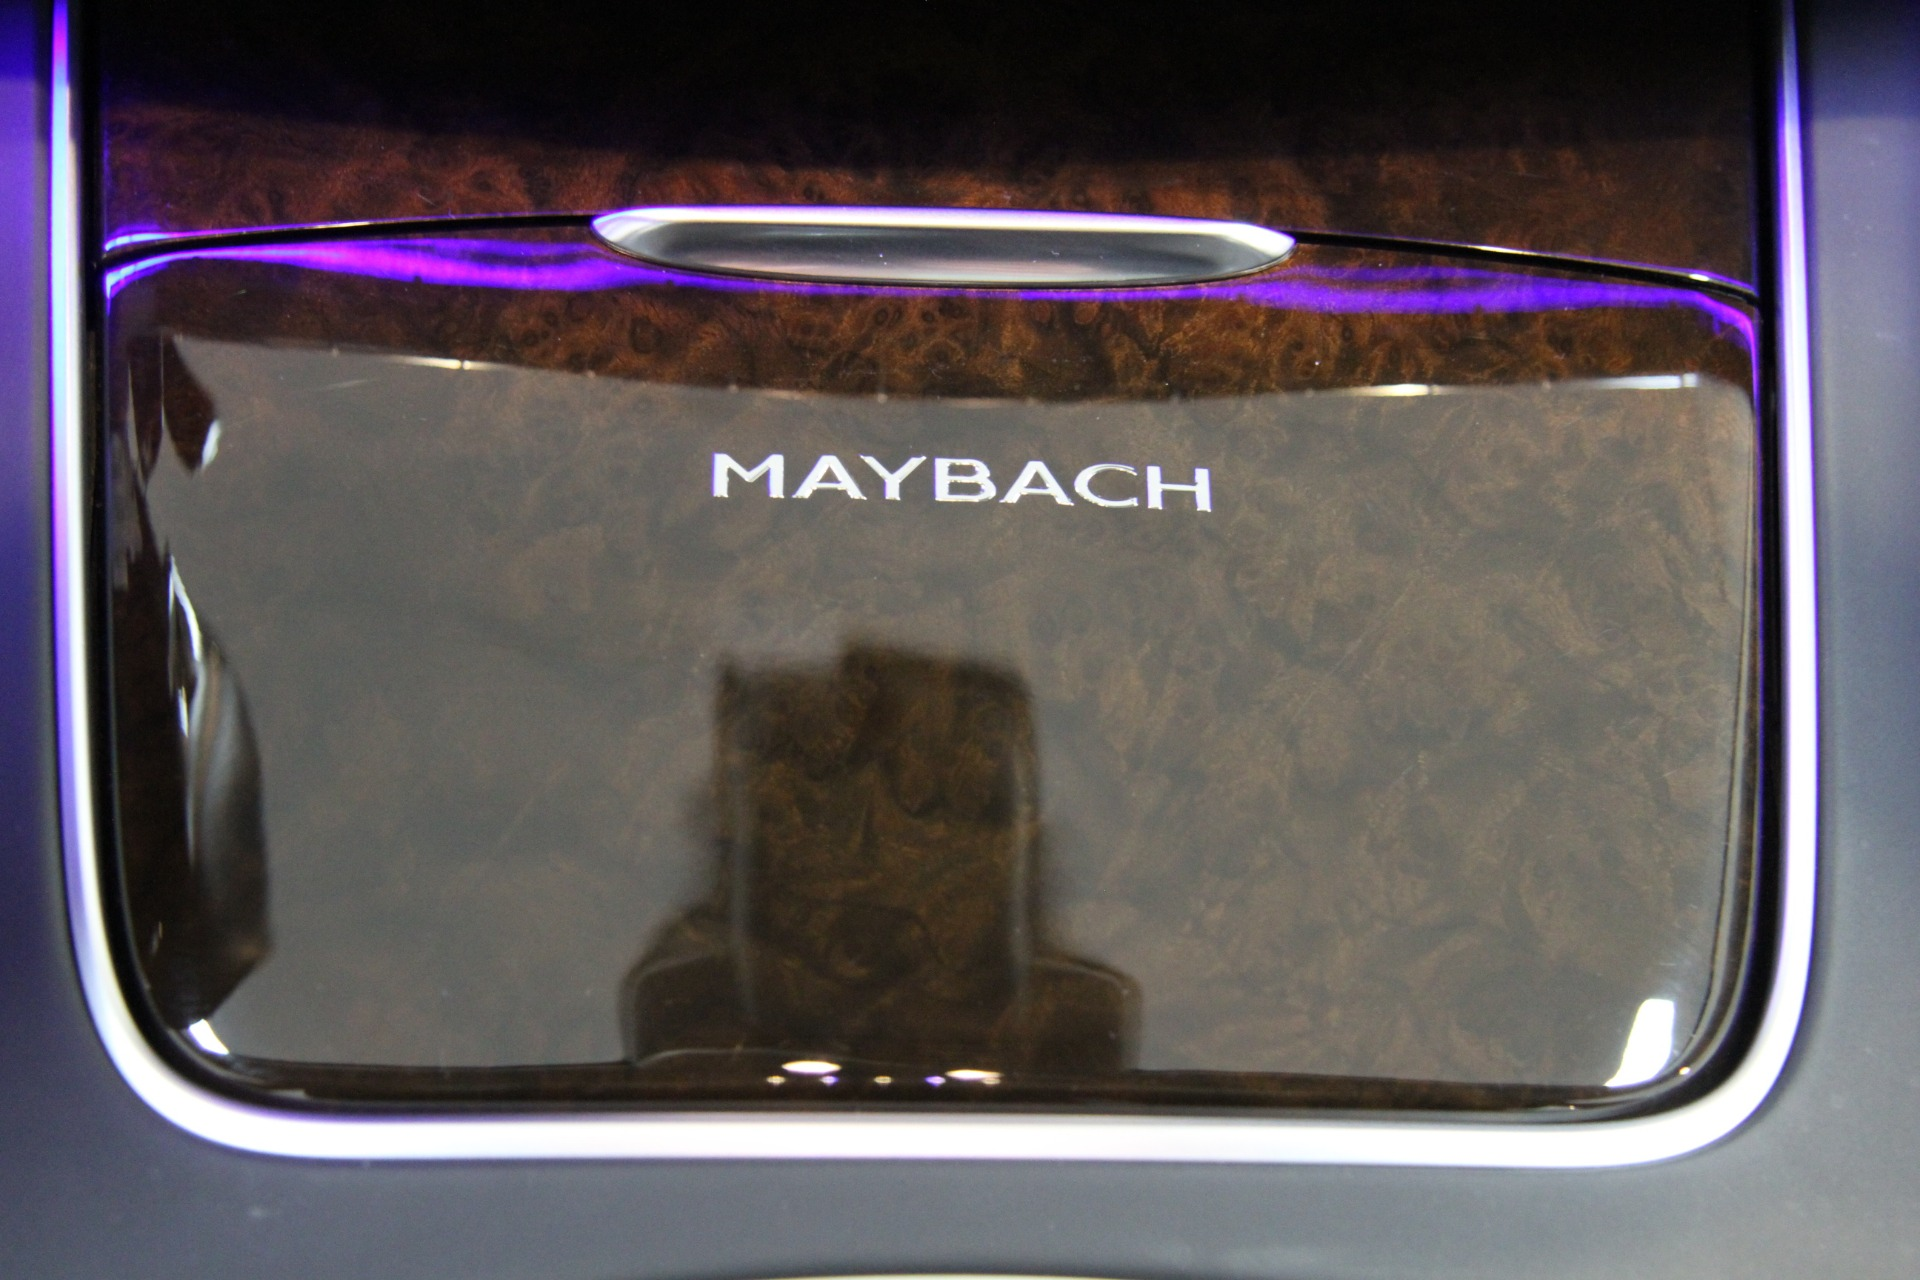 Maybach Dealership Near Me >> 2016 Mercedes-Benz S-Class Mercedes-Maybach S 600 Stock # 206658 for sale near Redondo Beach, CA ...